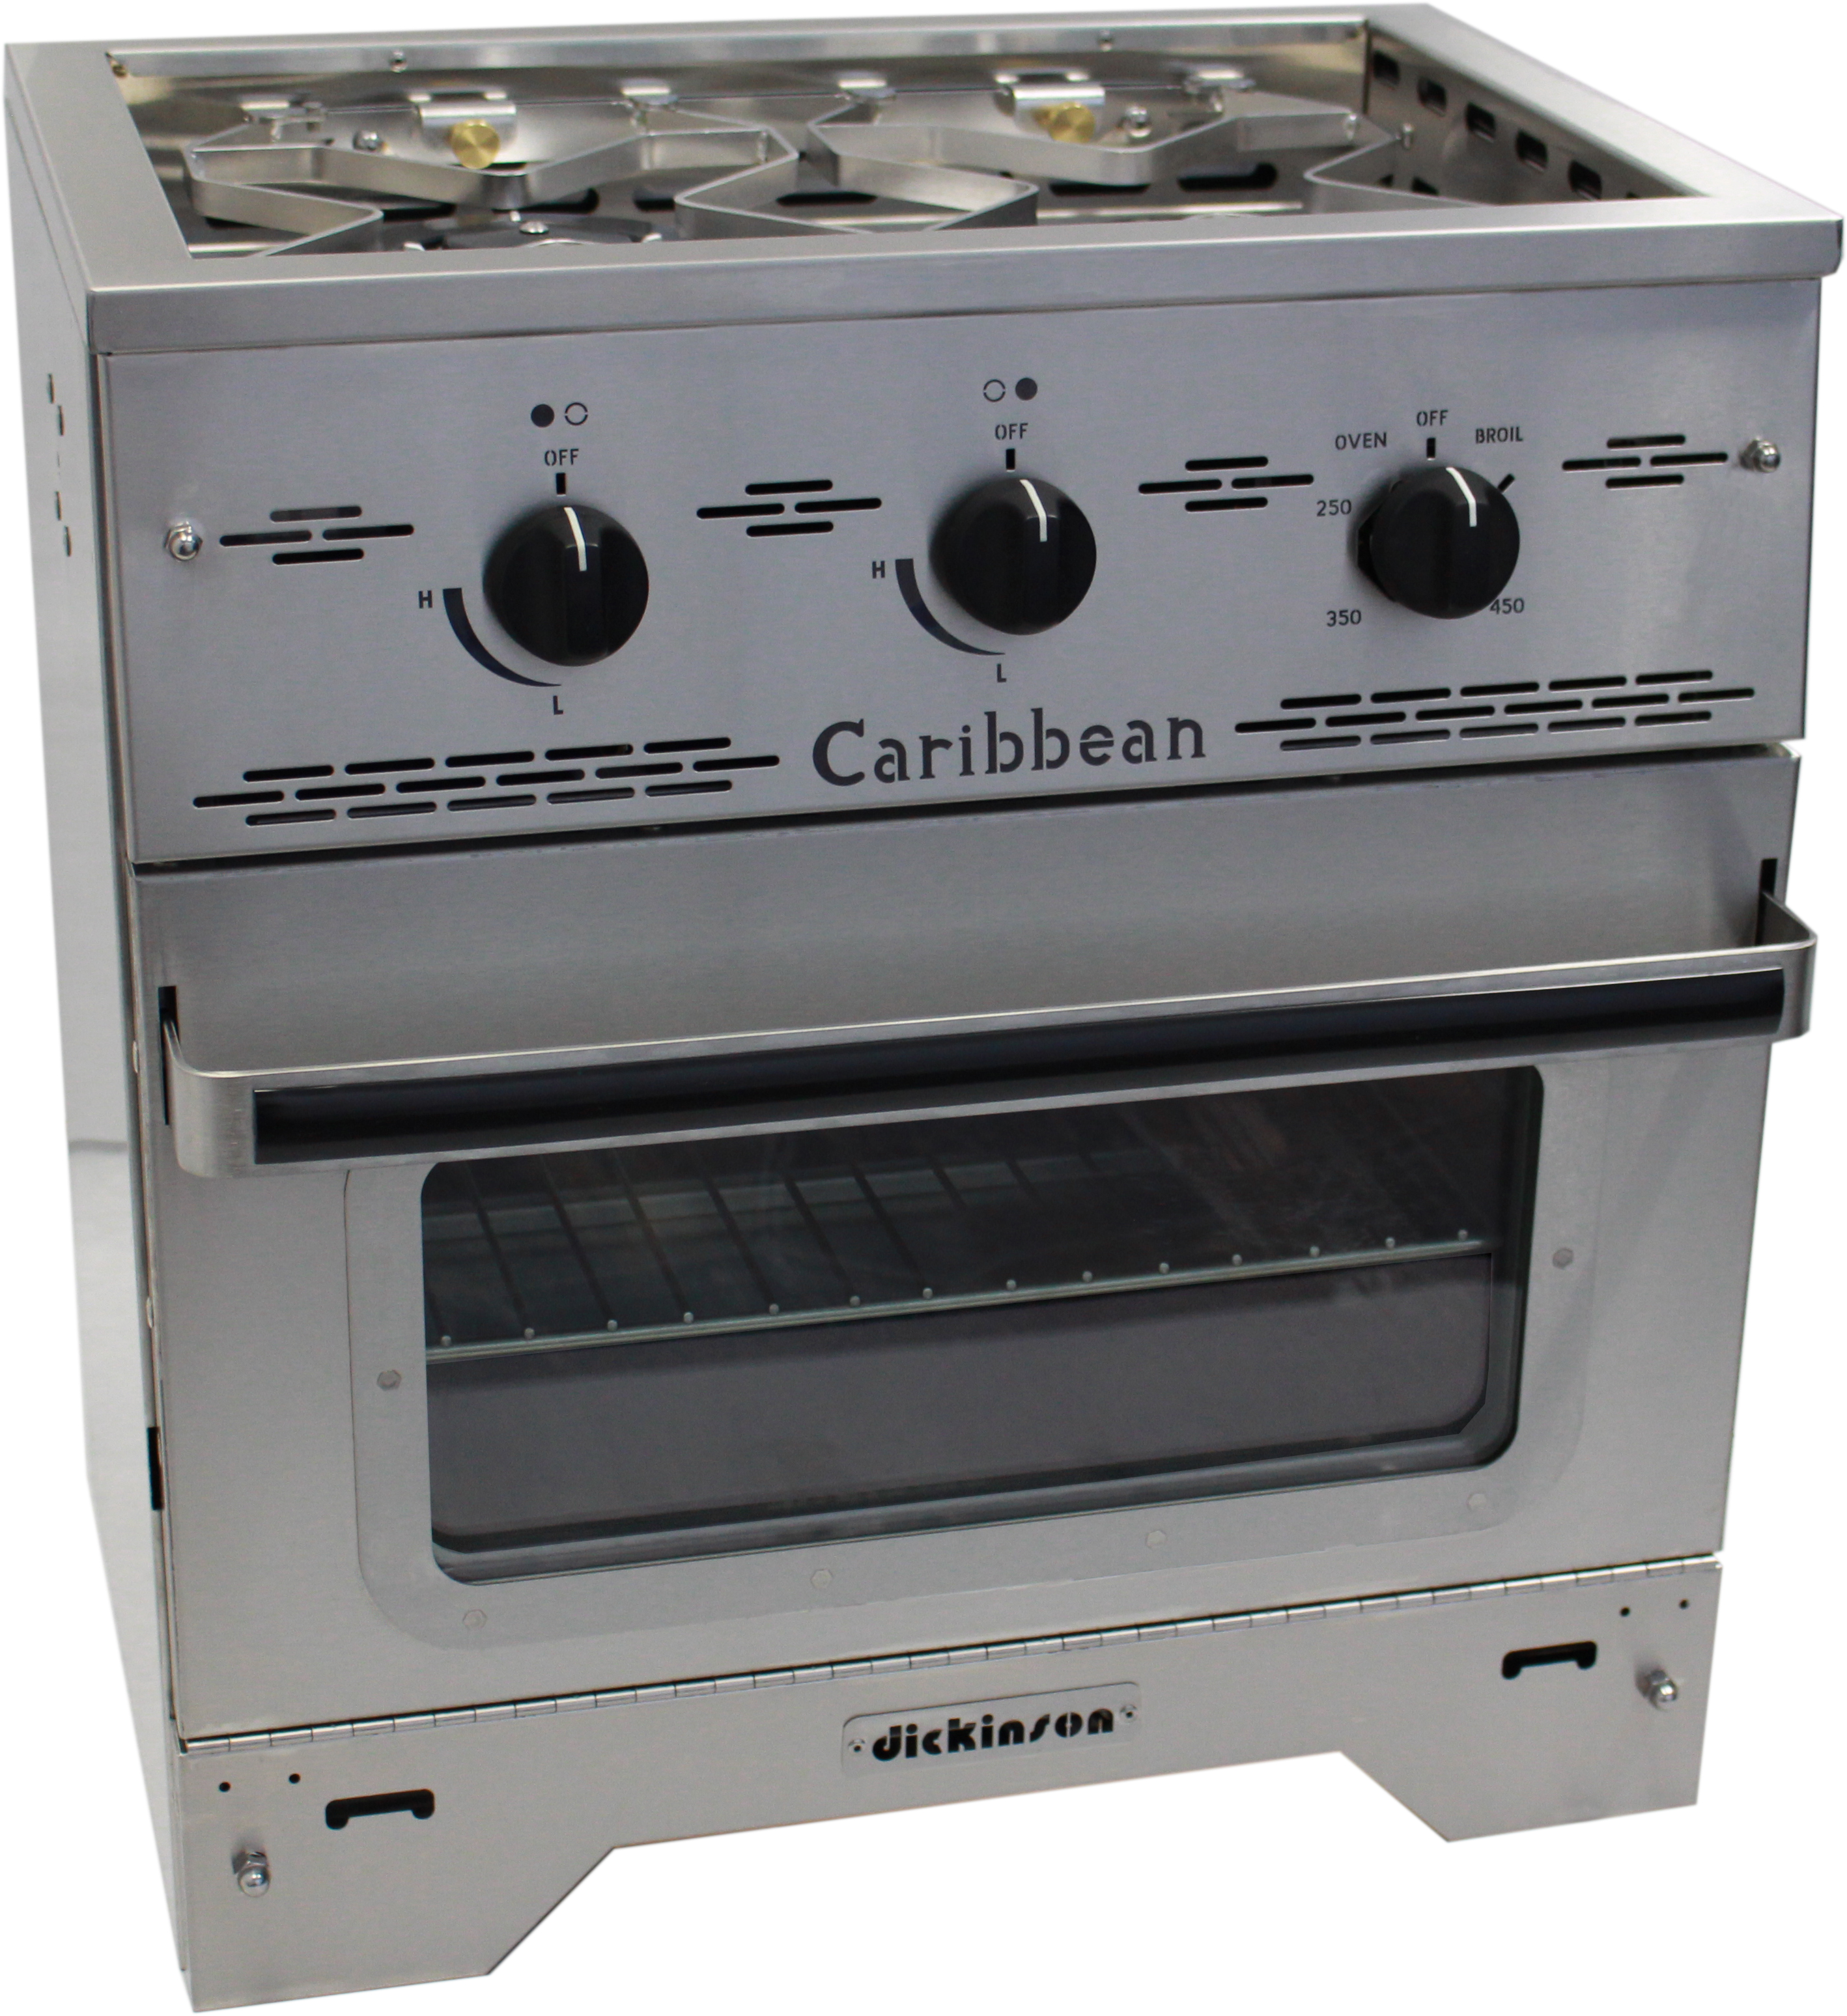 Used Vented Natural Gas Stove